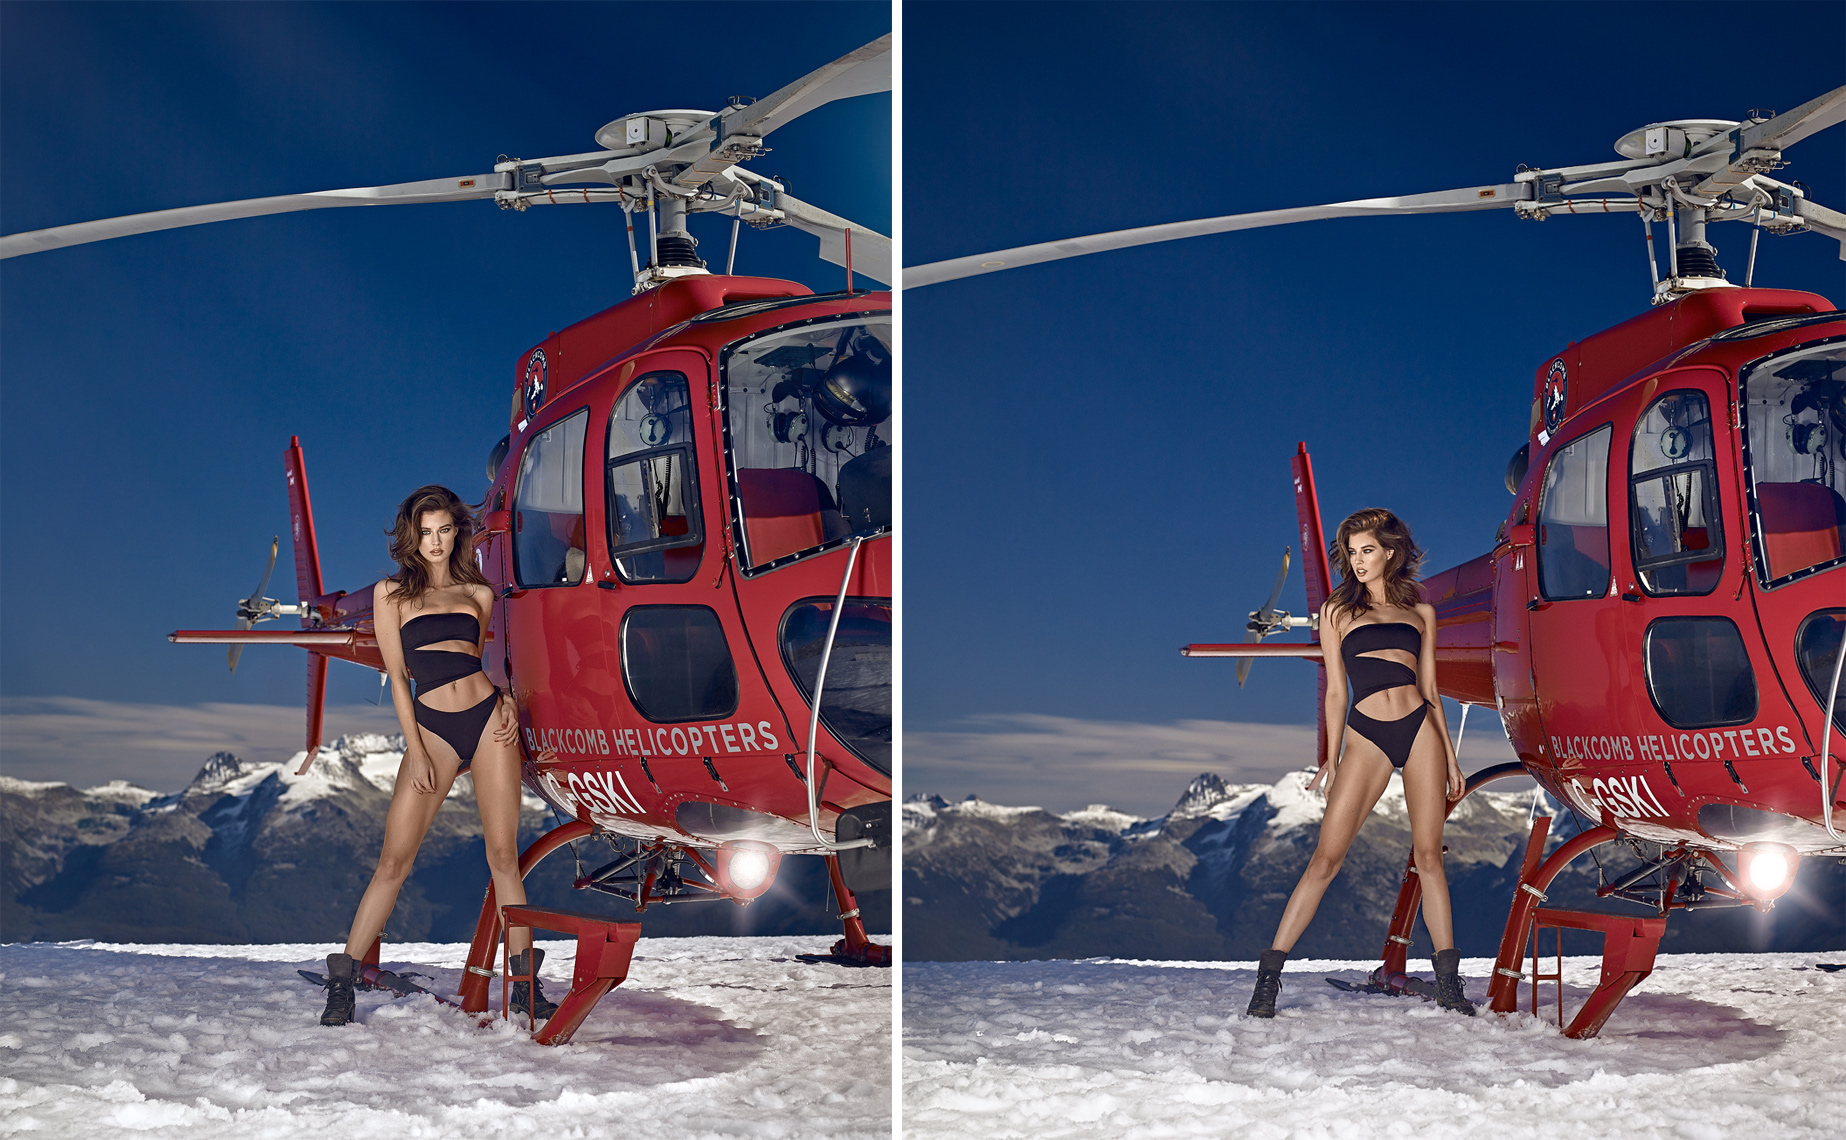 sexy girl on mountain with helicopter in snow